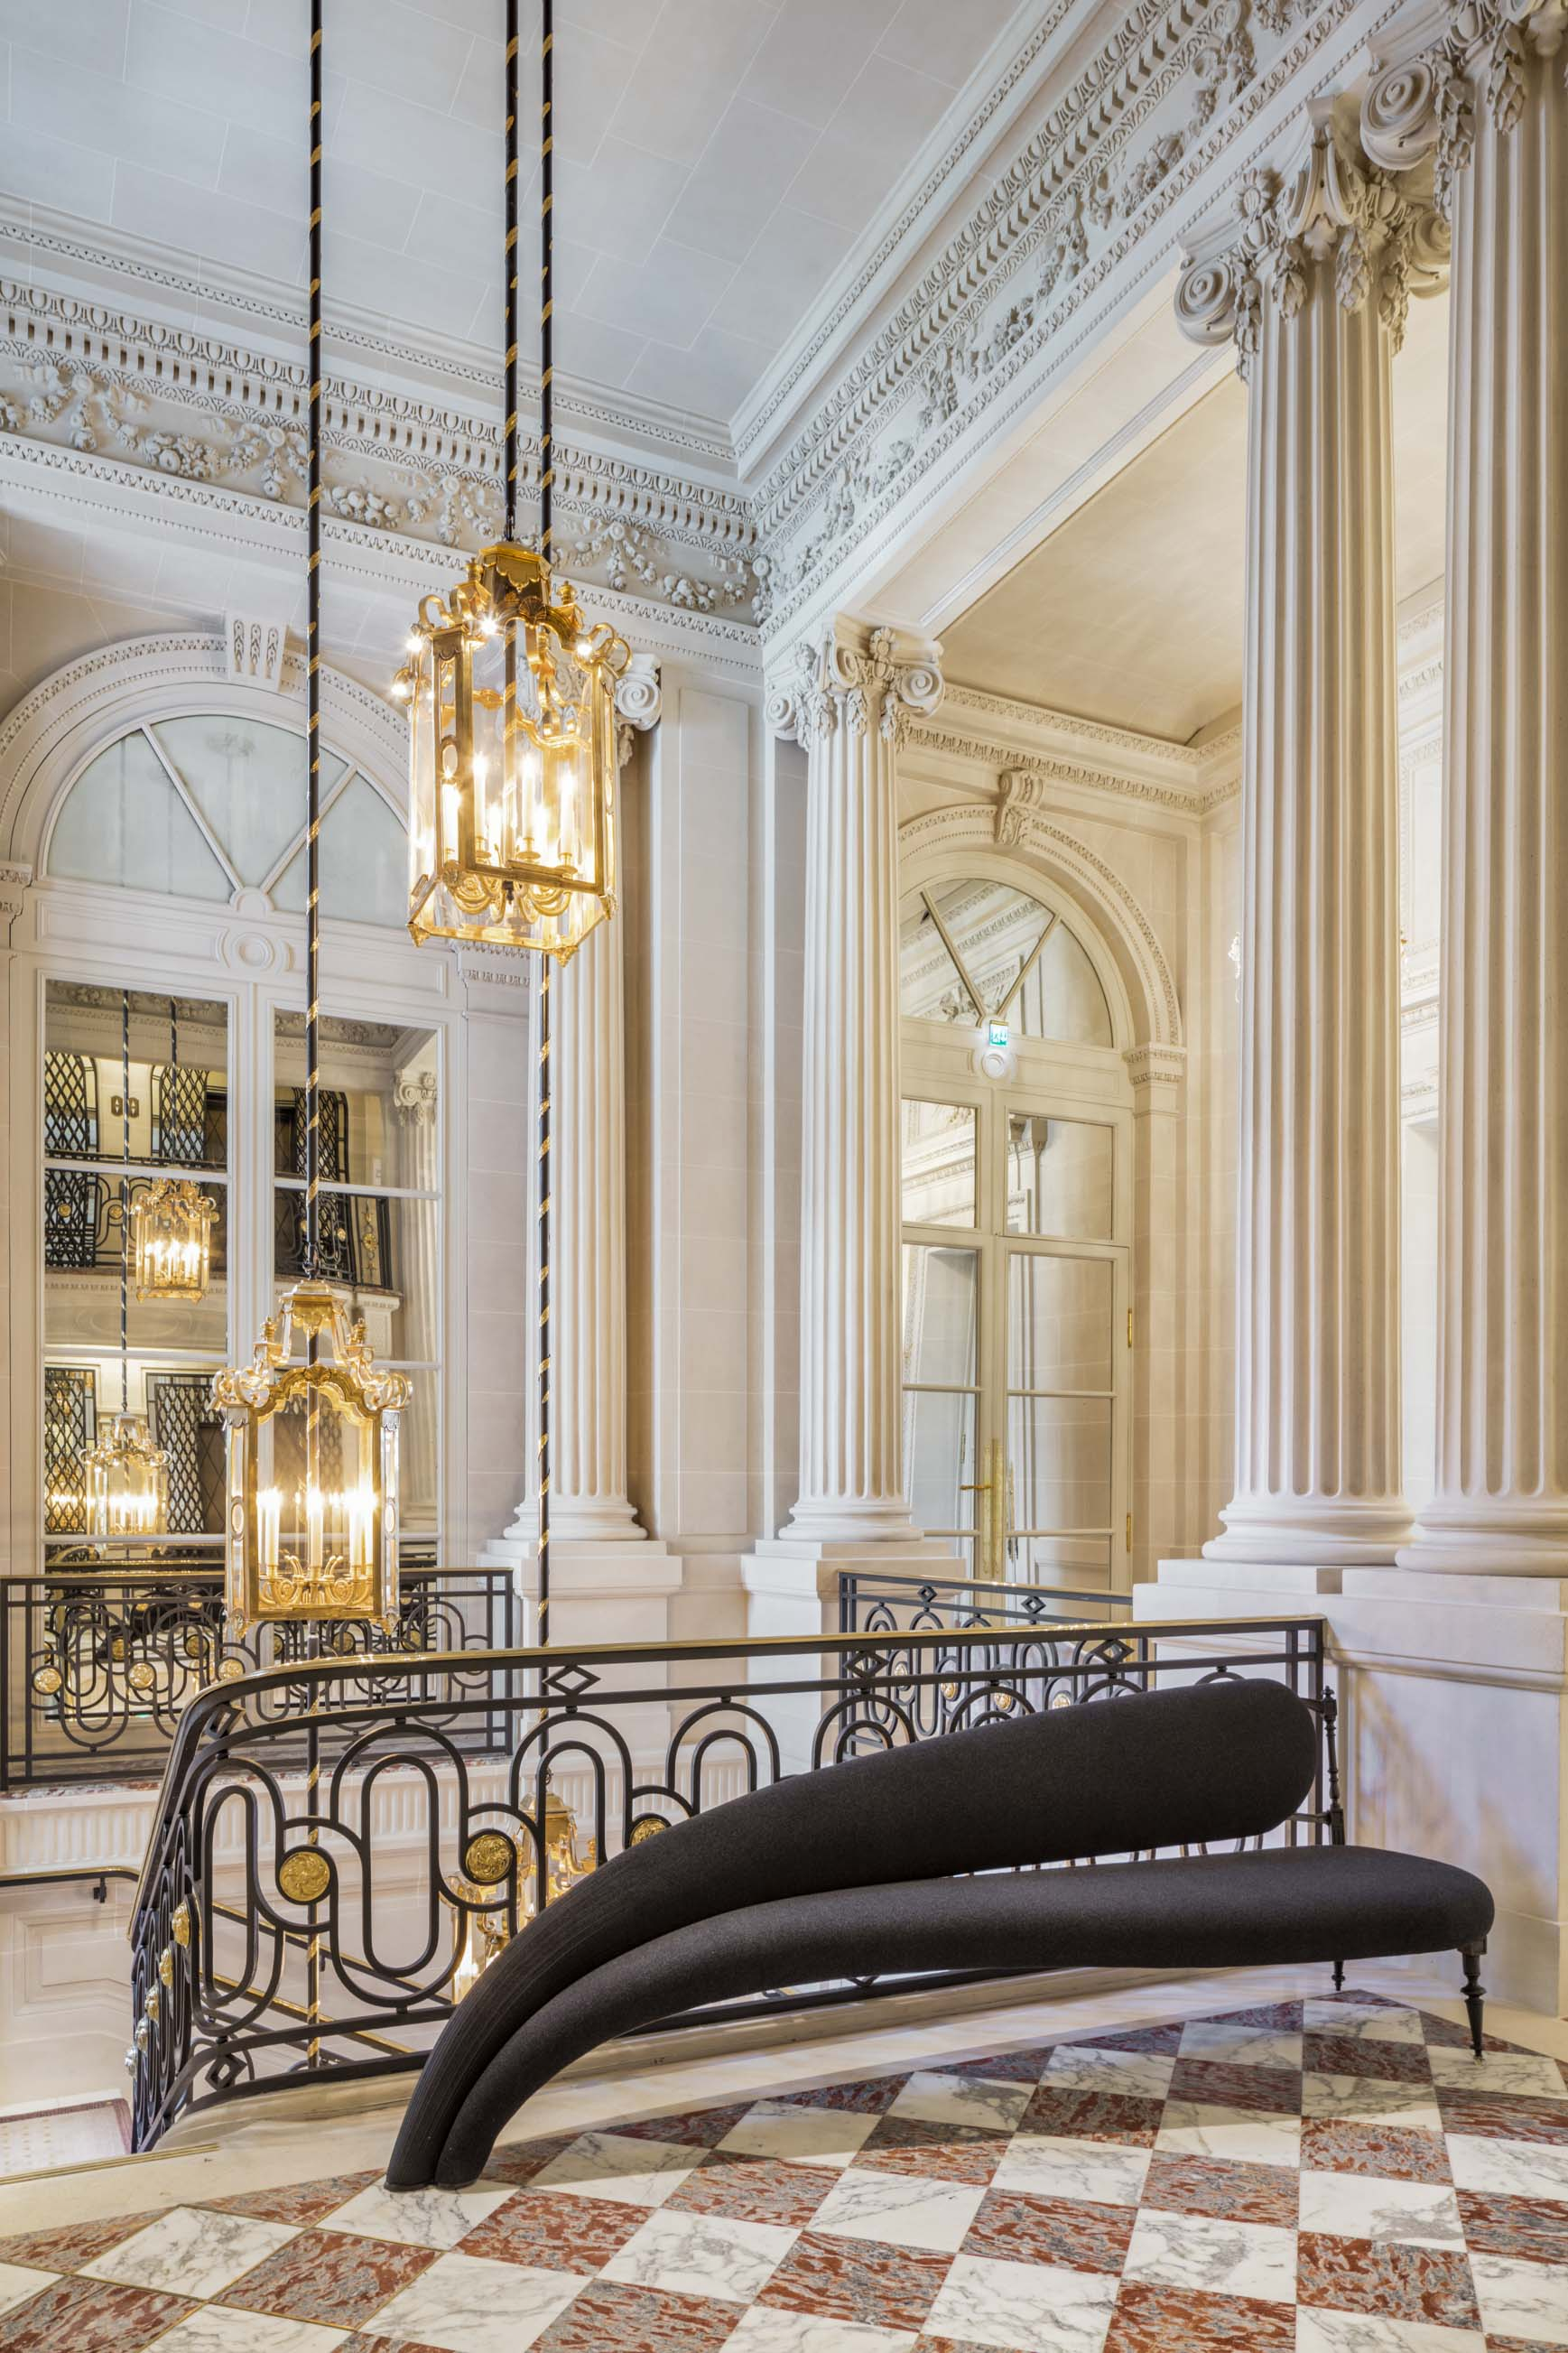 Hotel de Crillon, Paris.